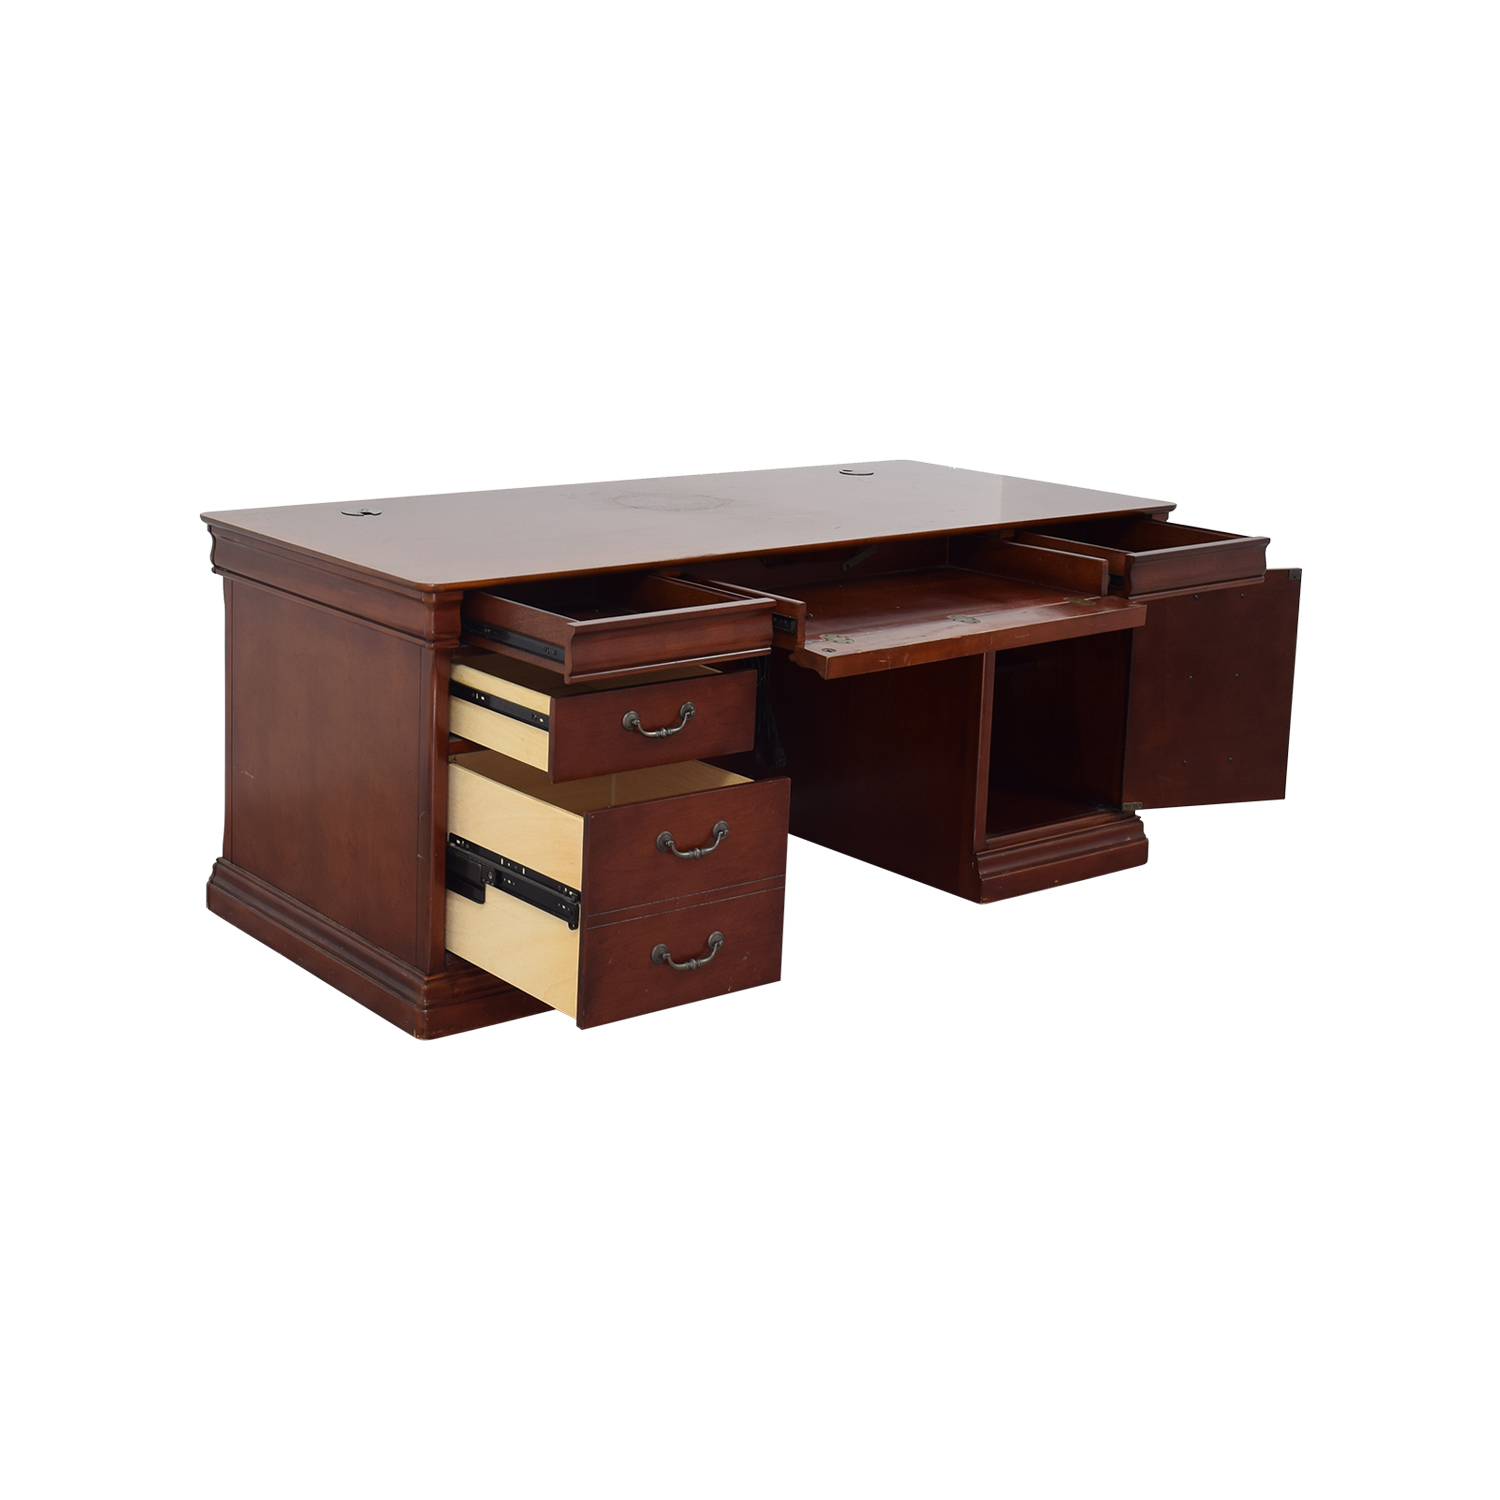 ... Home Office Desks; Buy Havertys Executive Desk With Leather Chair  Havertys Tables ...